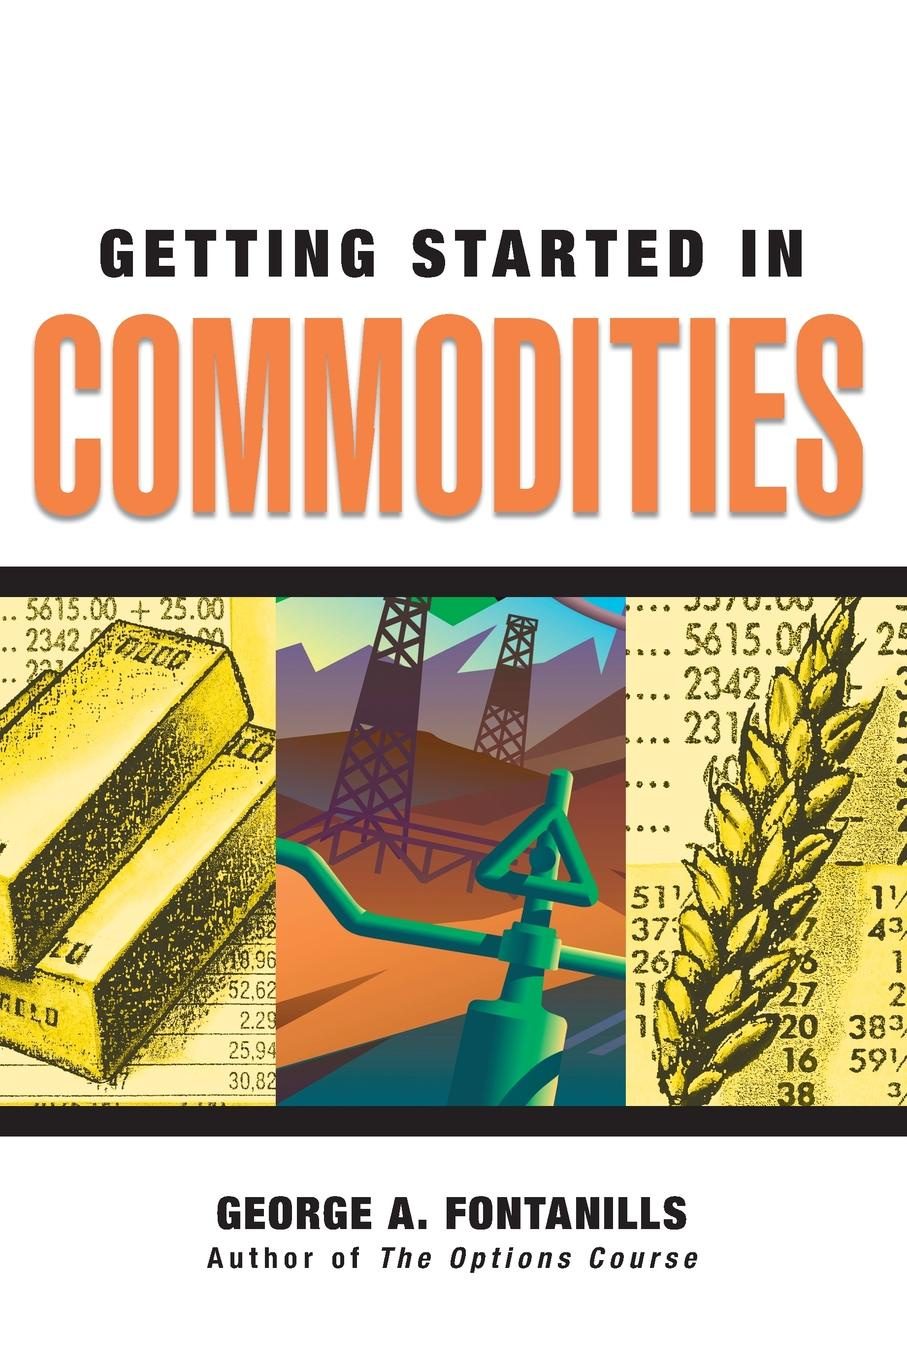 George A. Fontanills GSI Commodities george fontanills a trade options online